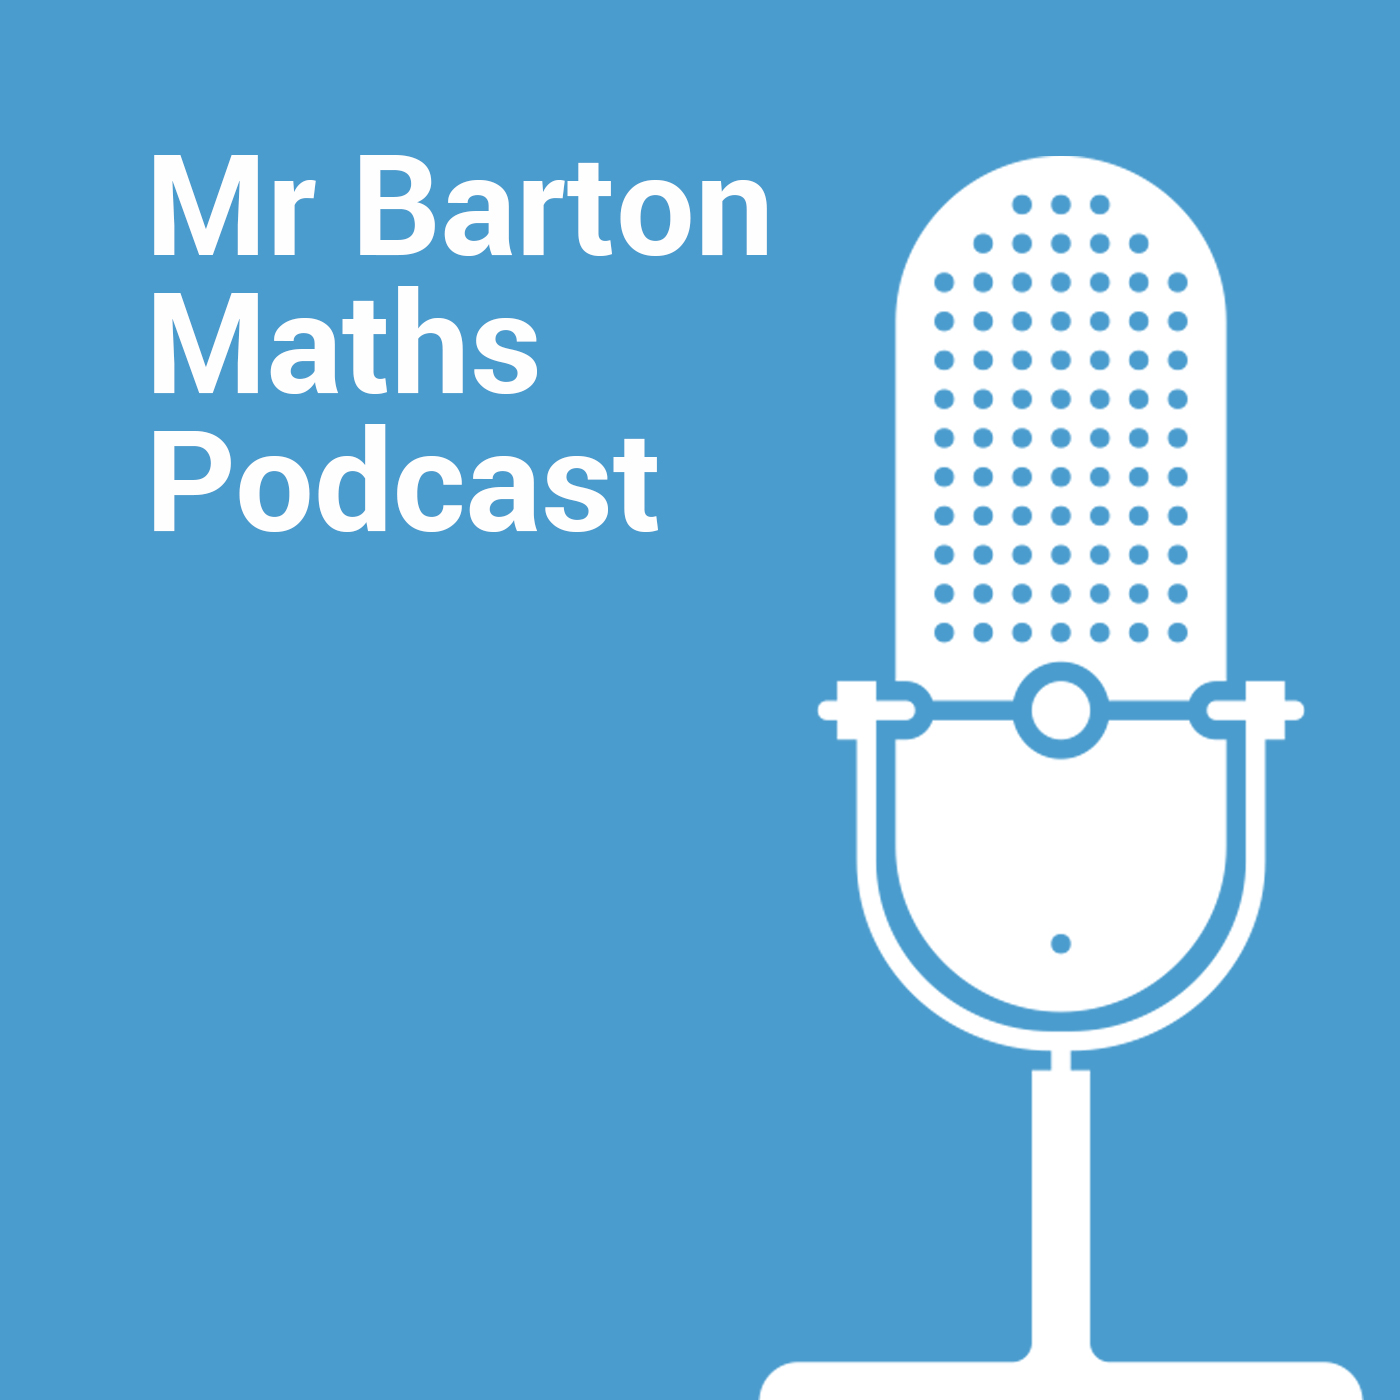 Mr Barton Maths Podcast for Maths Teachers on Mr Barton Maths